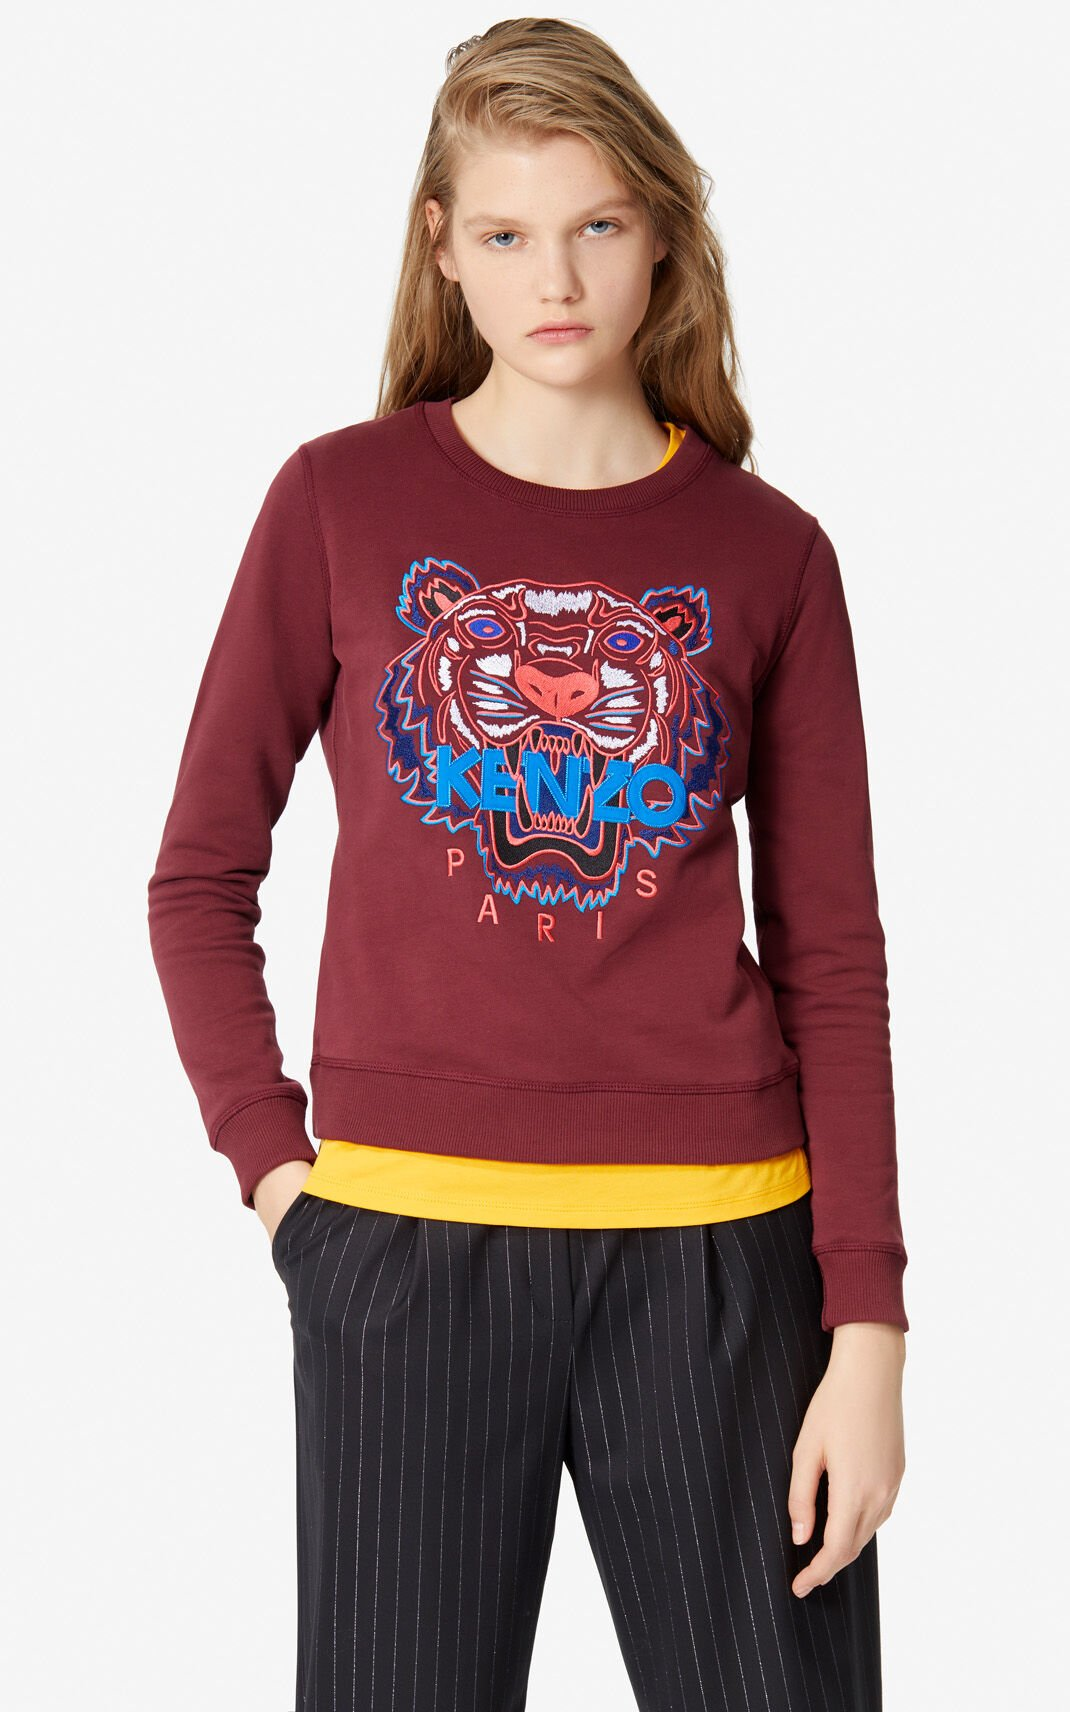 Women Sweatshirtsamp; Sweatshirtsamp; Hoodies For Hoodies hQrdCts